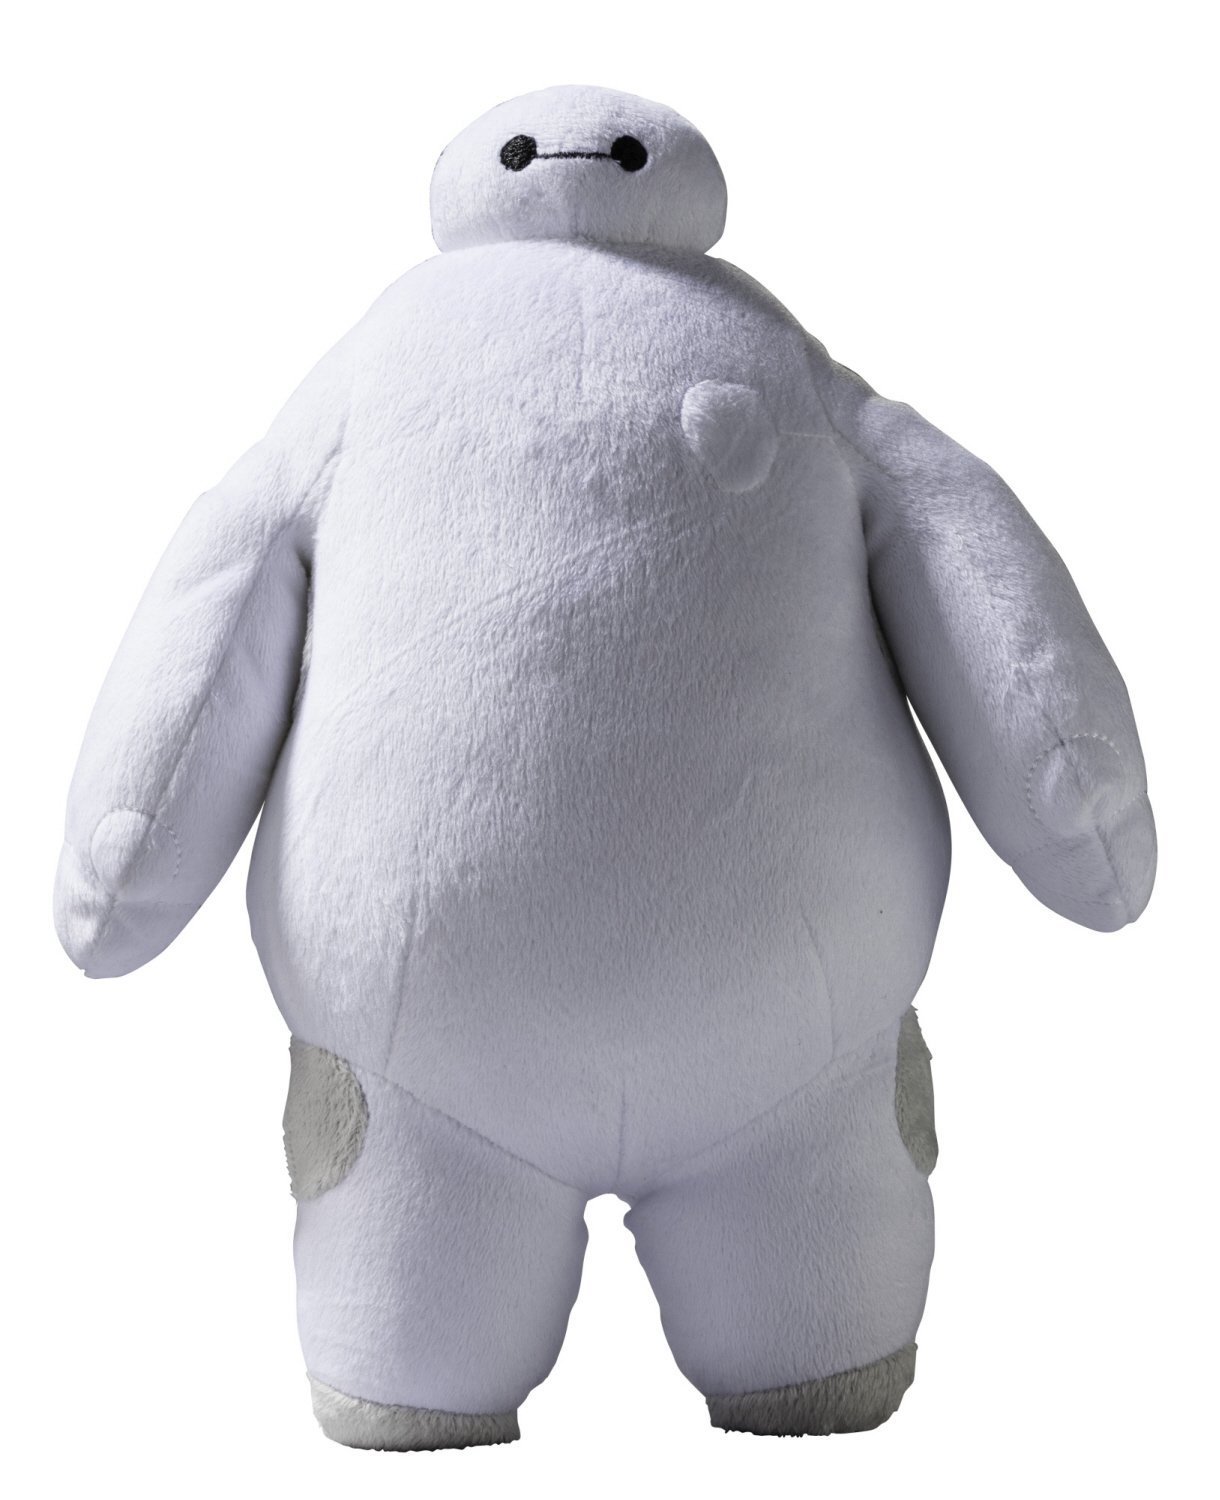 Toys For Big : Check out this big hero baymax plush figure